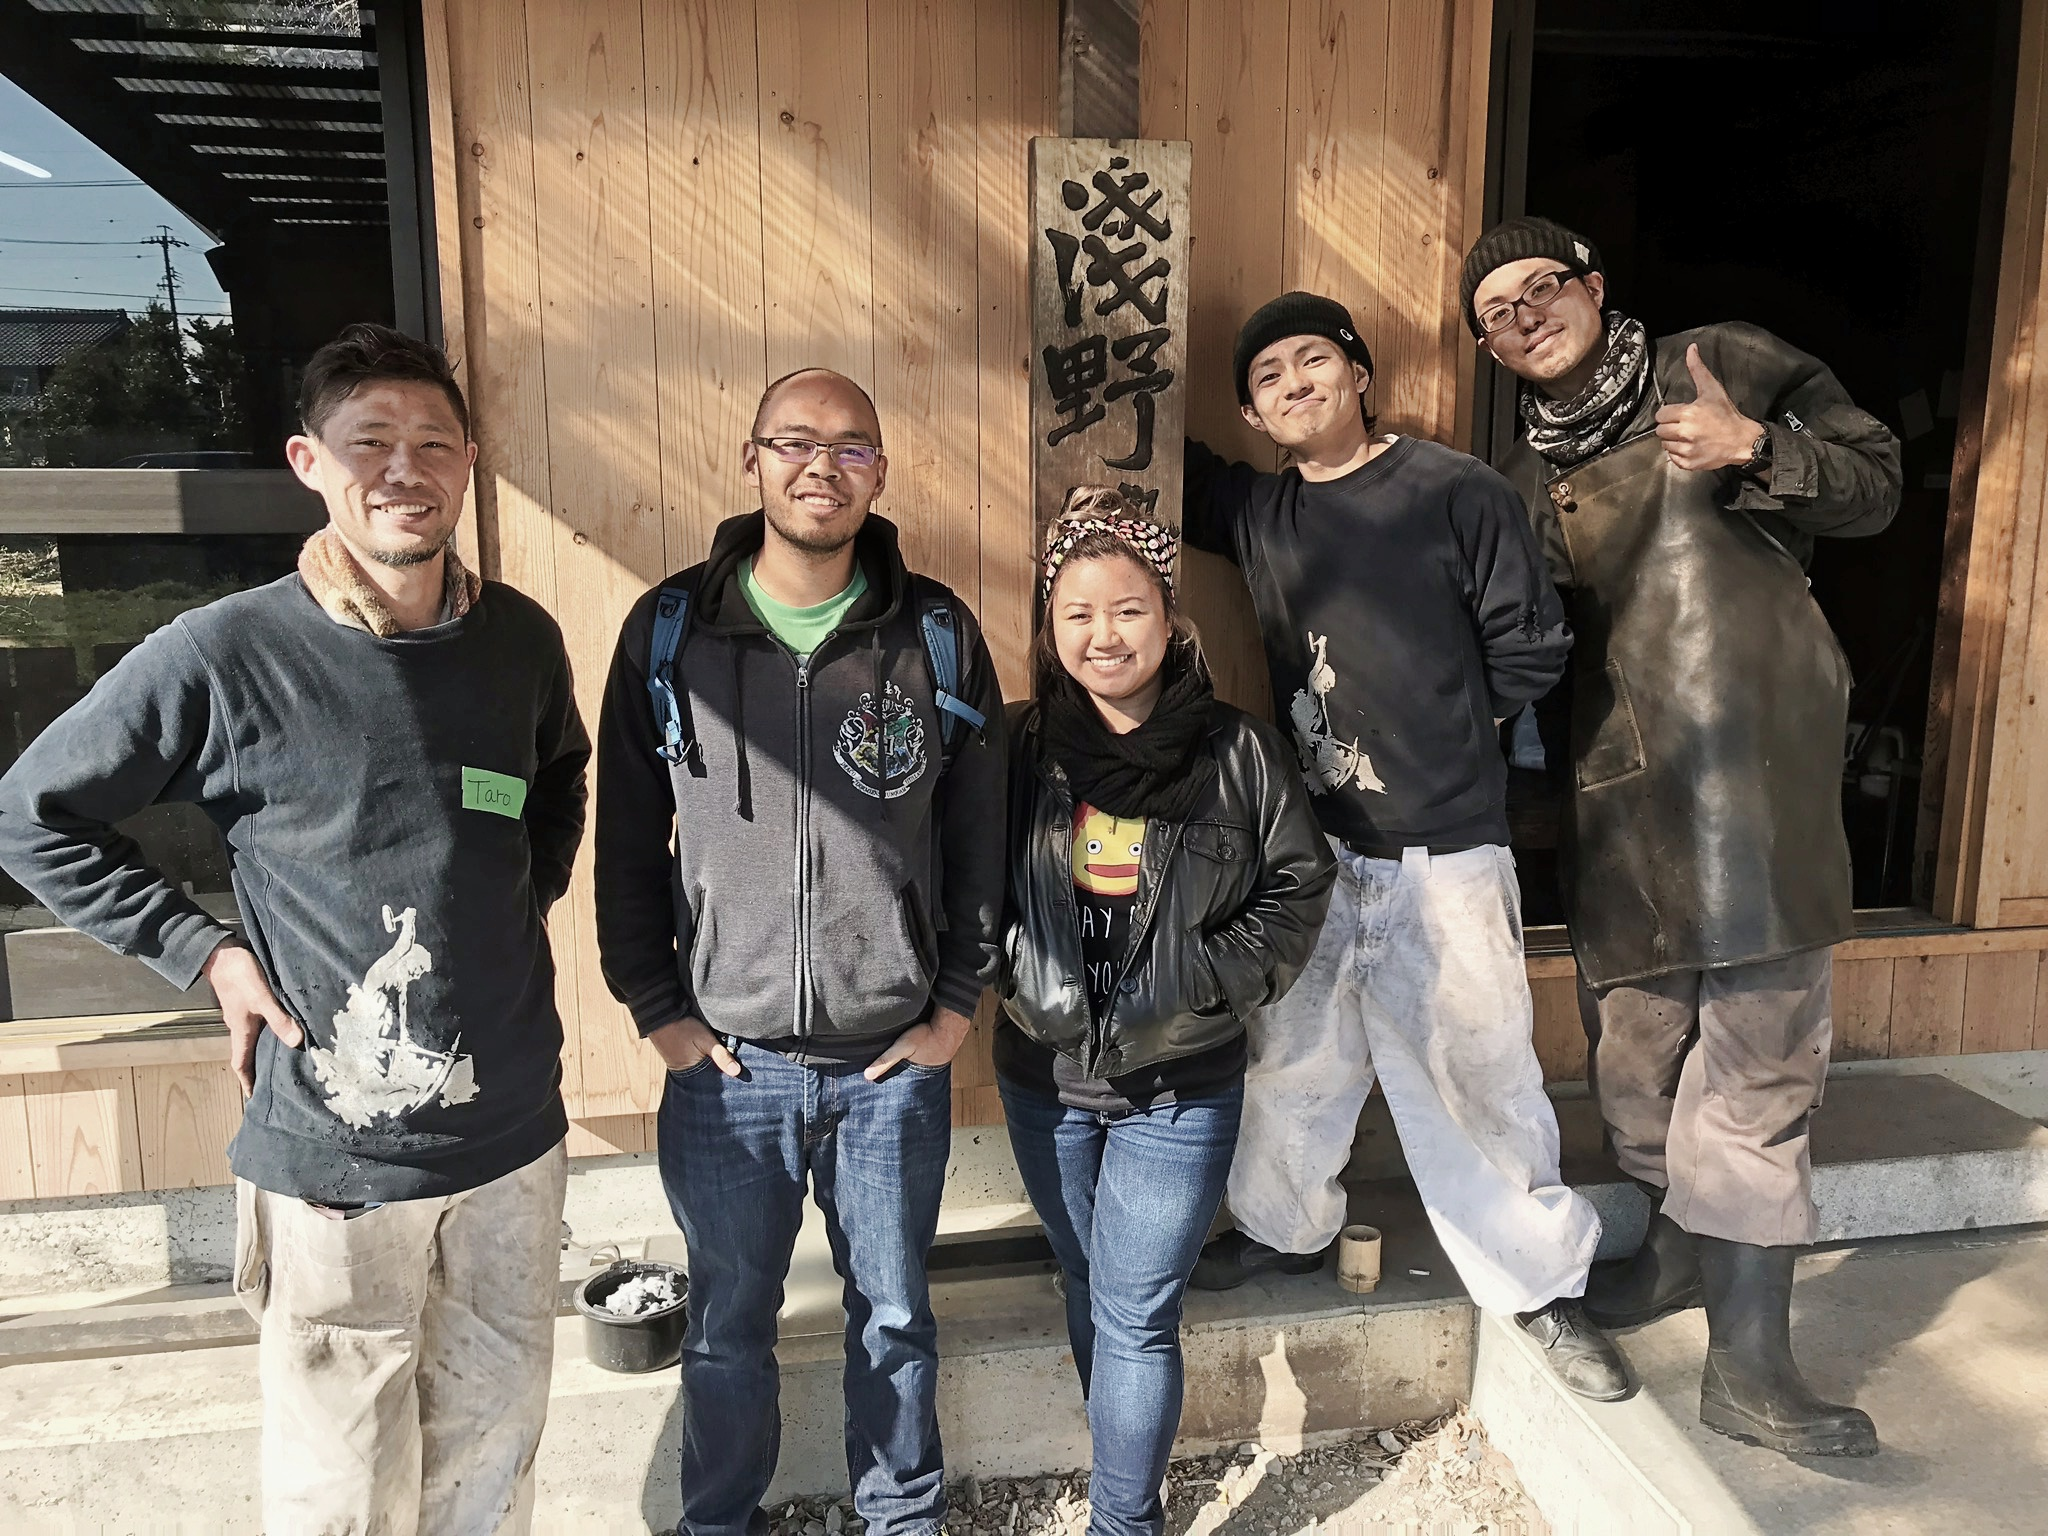 A young couple standing with the master sword-smith and workers at Asano Kajiya located in Gifu, Japan.